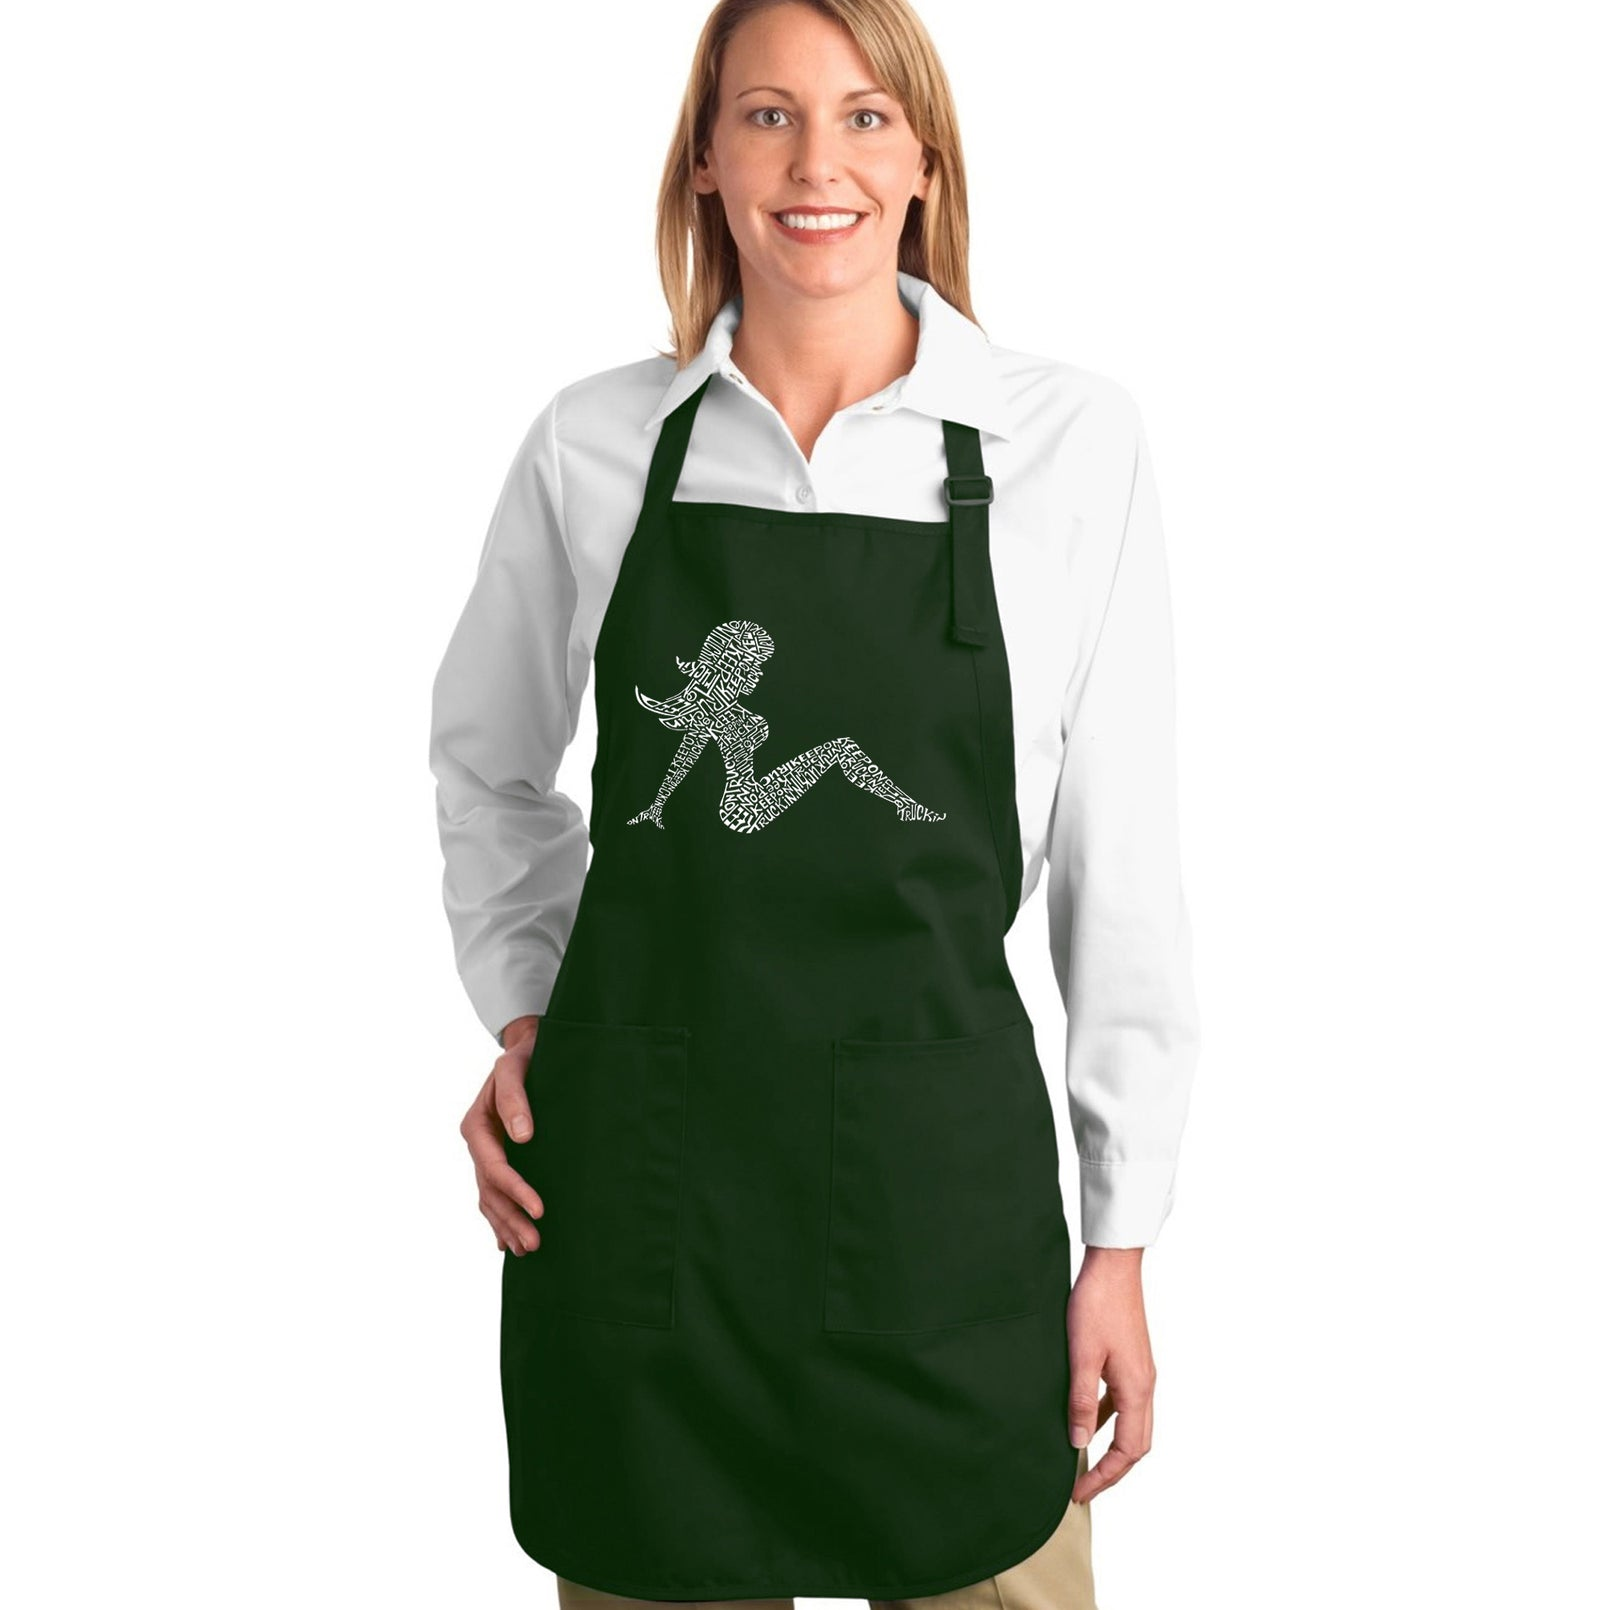 Los Angeles Pop Art Full Length Apron - Mudflap Girl - Keep on Truckin